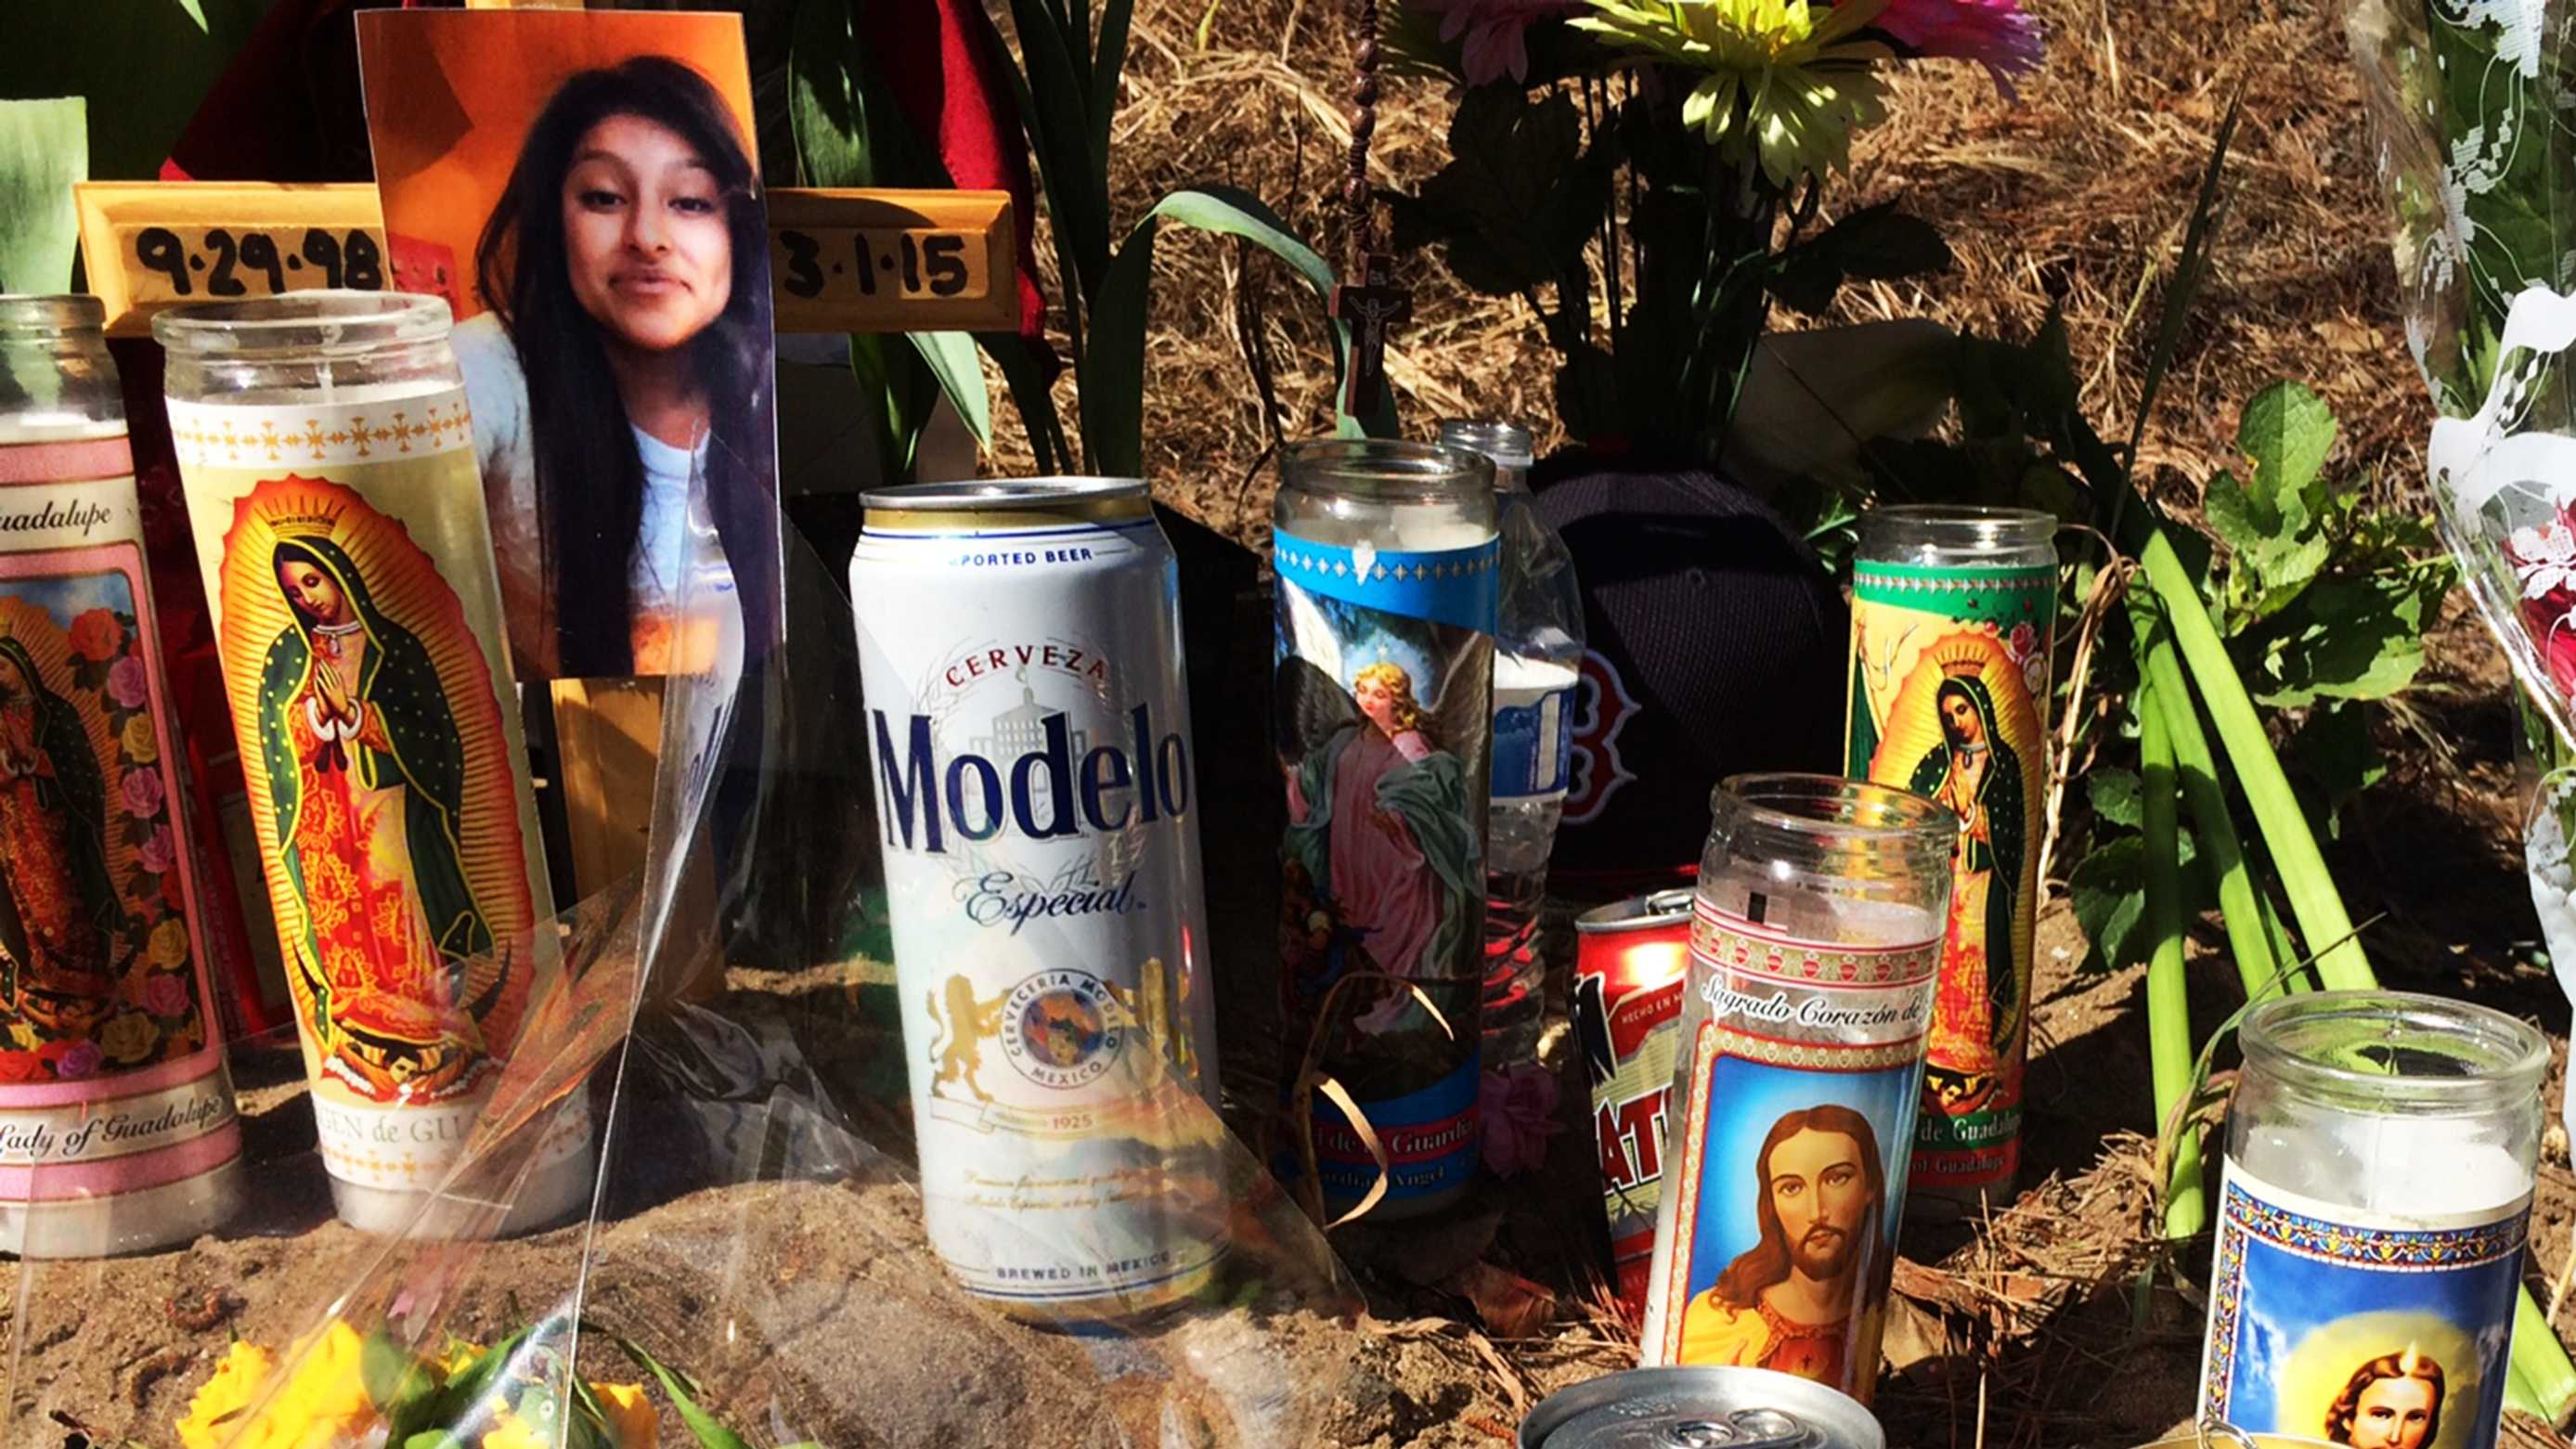 Beer cans were left among prayer candles where four died in Aptos.  (March 4, 2015)